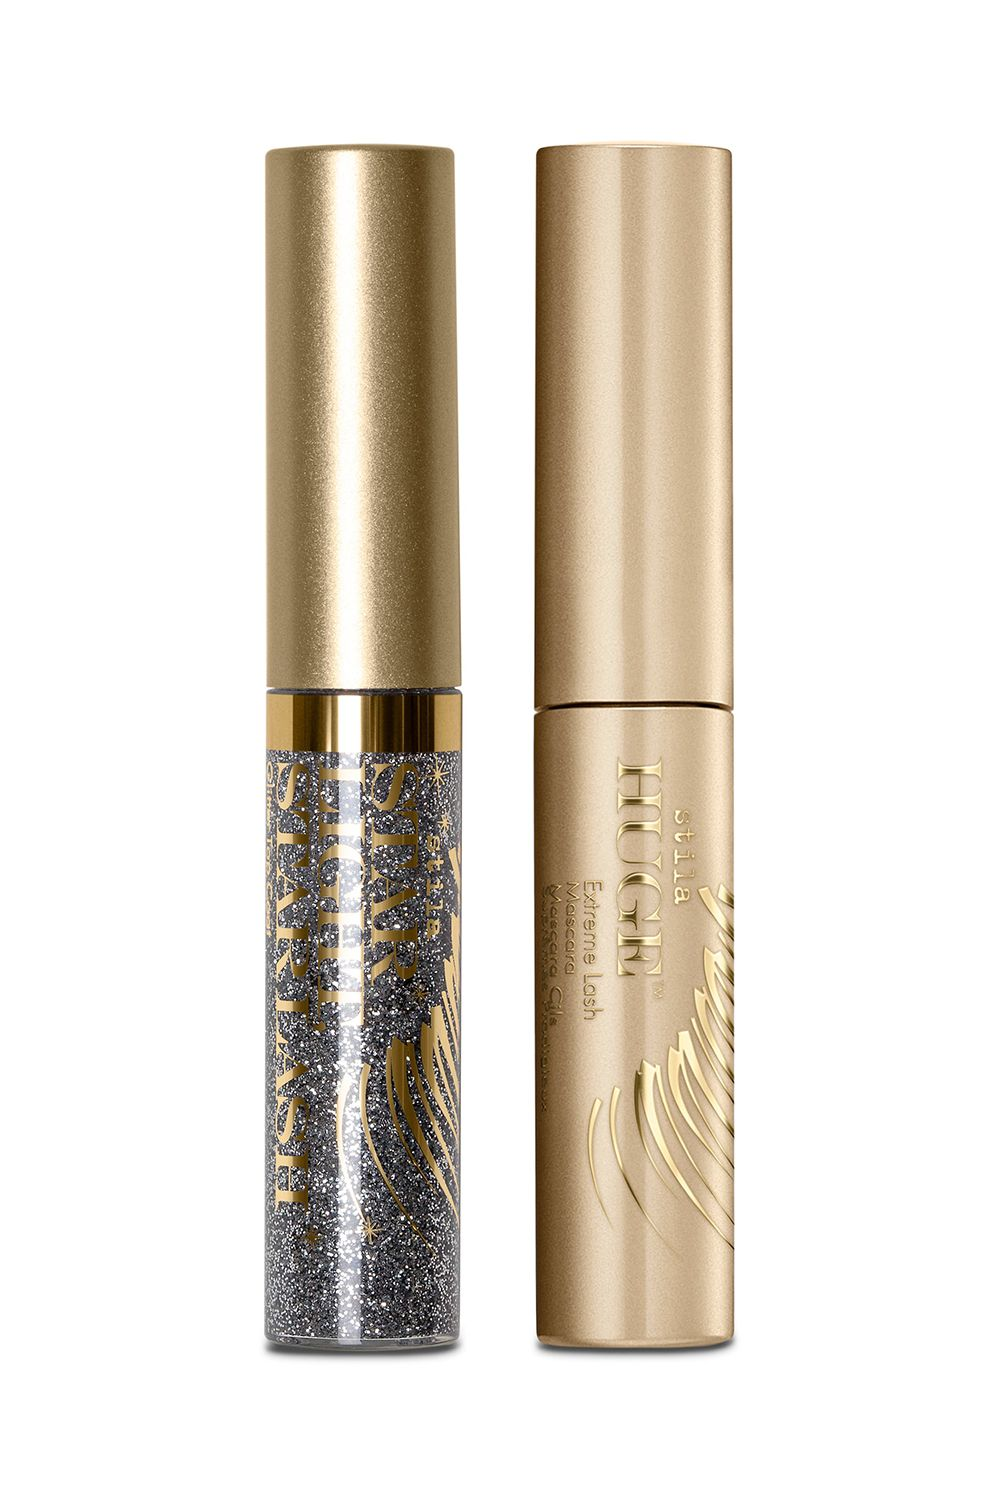 This Fun Mascara Set Stila Fringe With Benefits Set Voluminous lashes look even cooler with a subtle hint of sparkle. Coat your lashes with this glittery topper for proof.